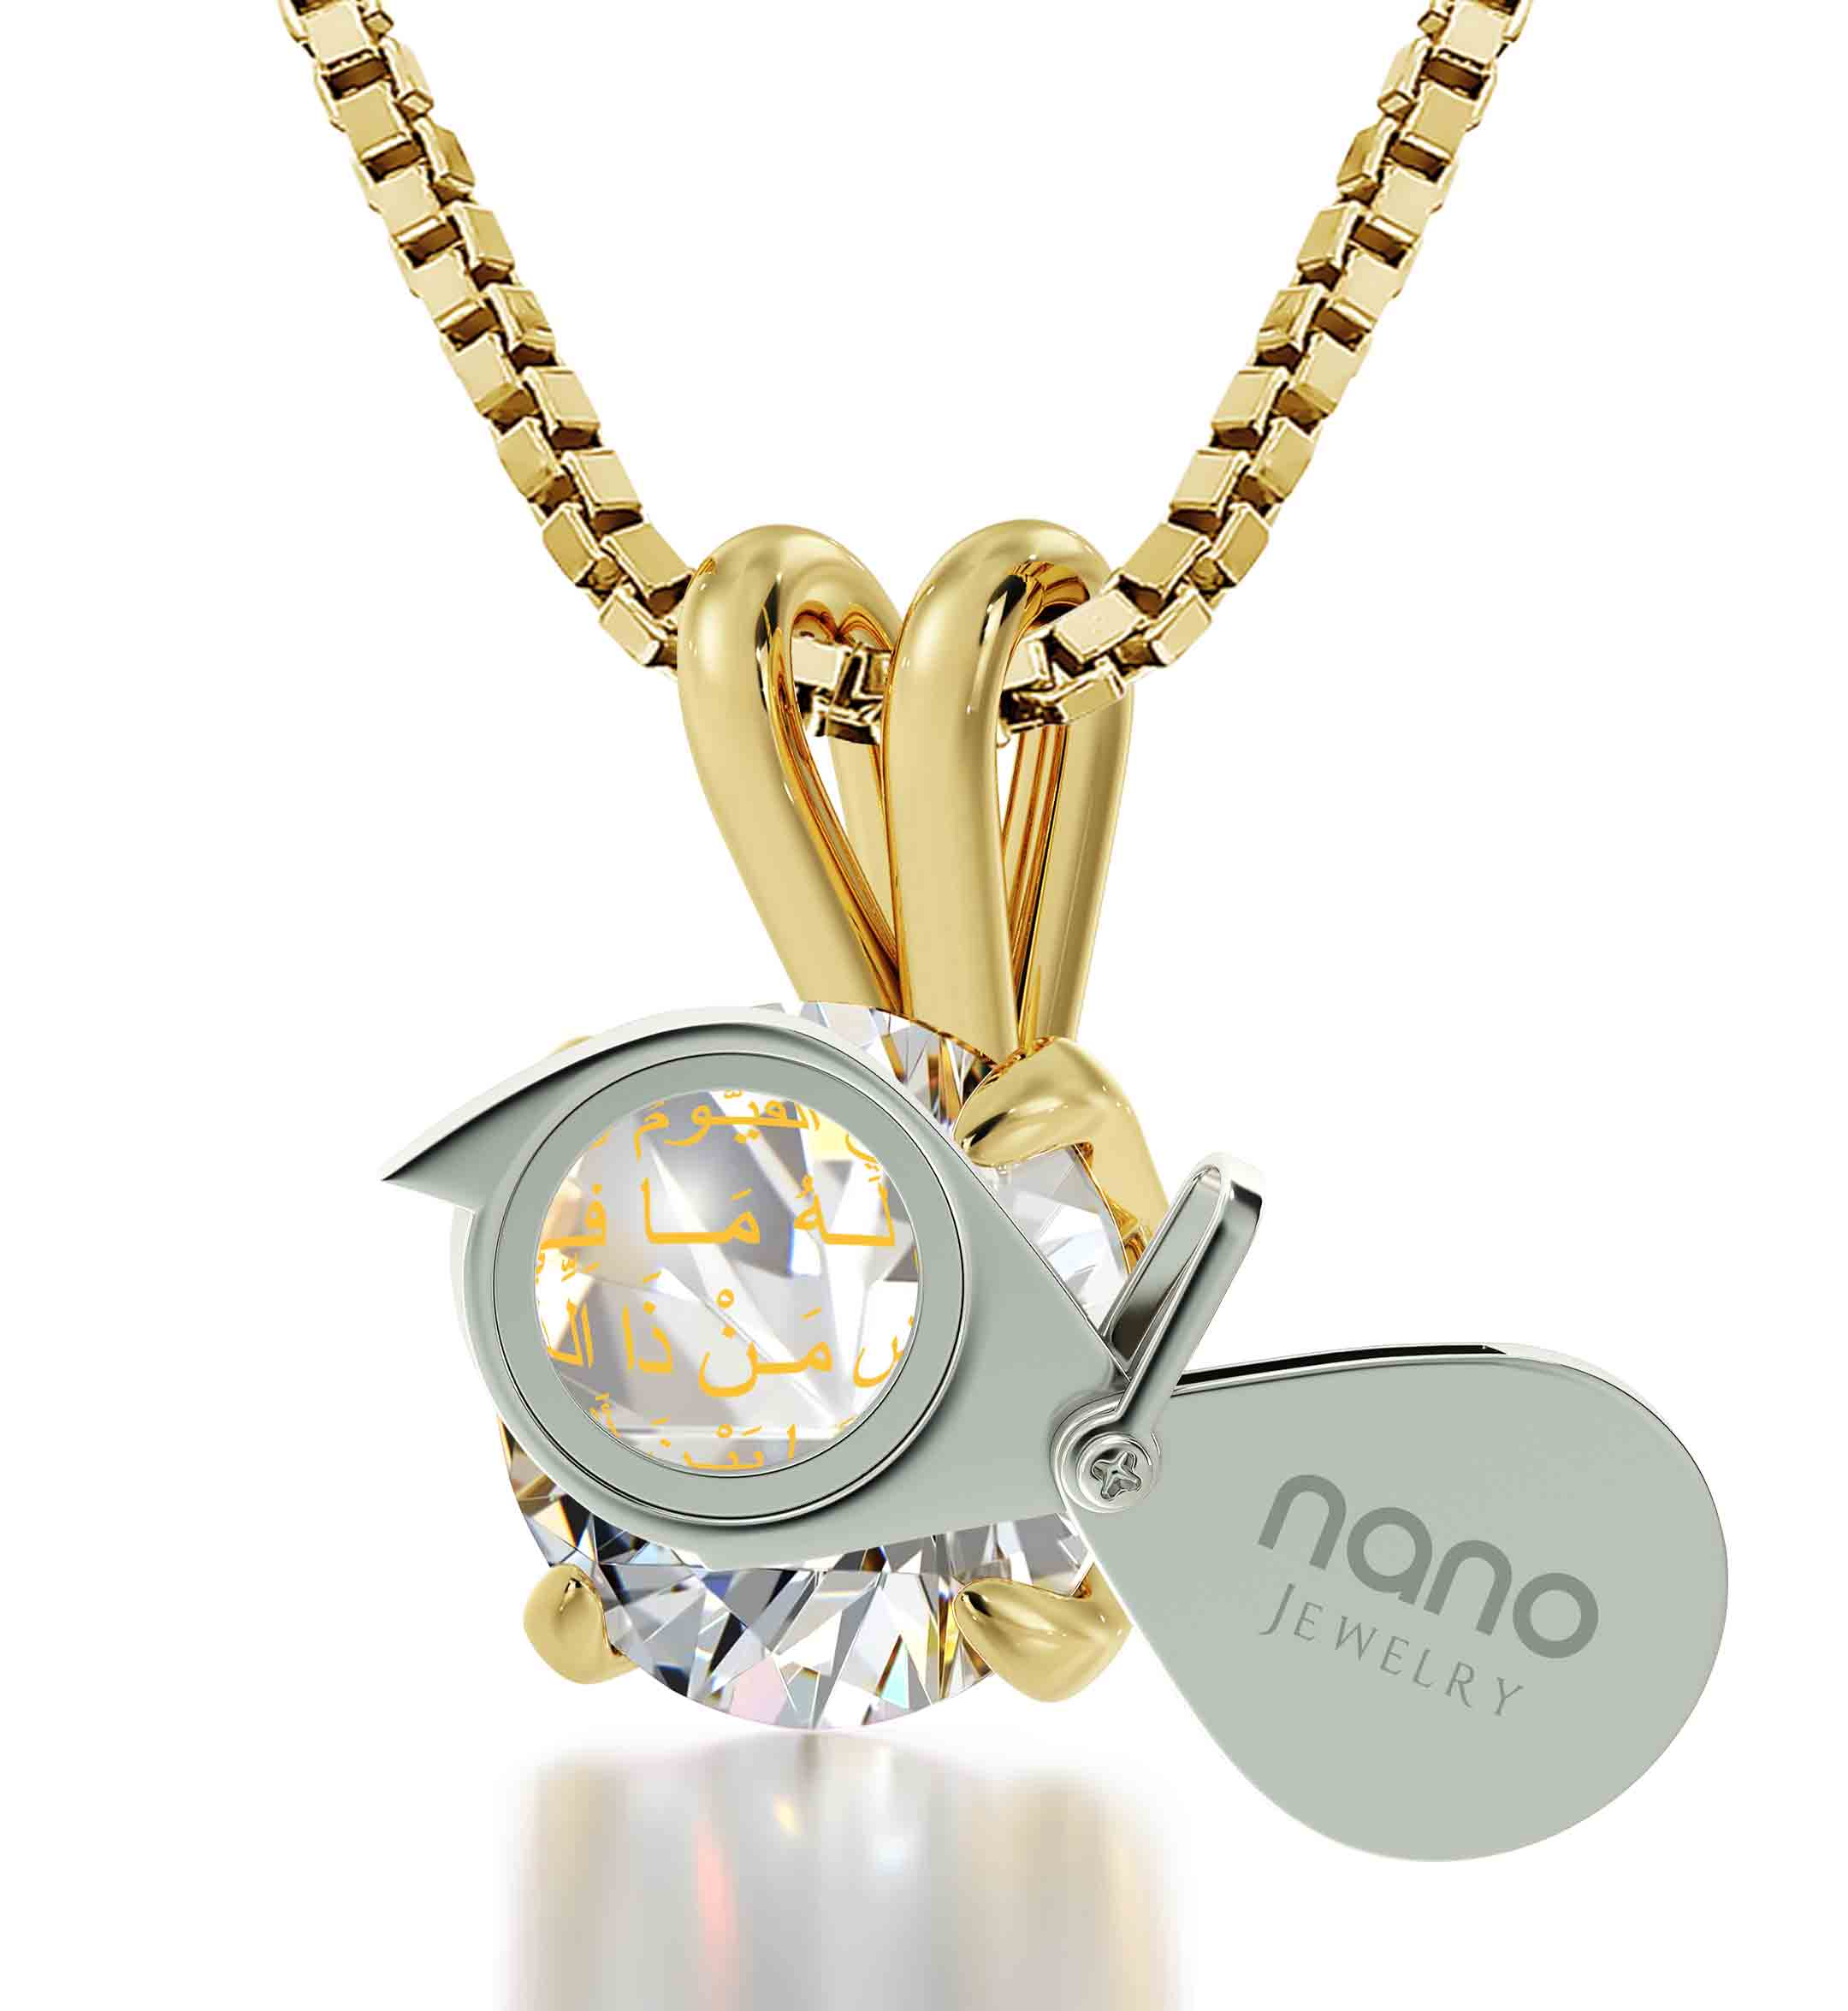 Muslim Gifts for Women: Solitaire - Nano Jewelry